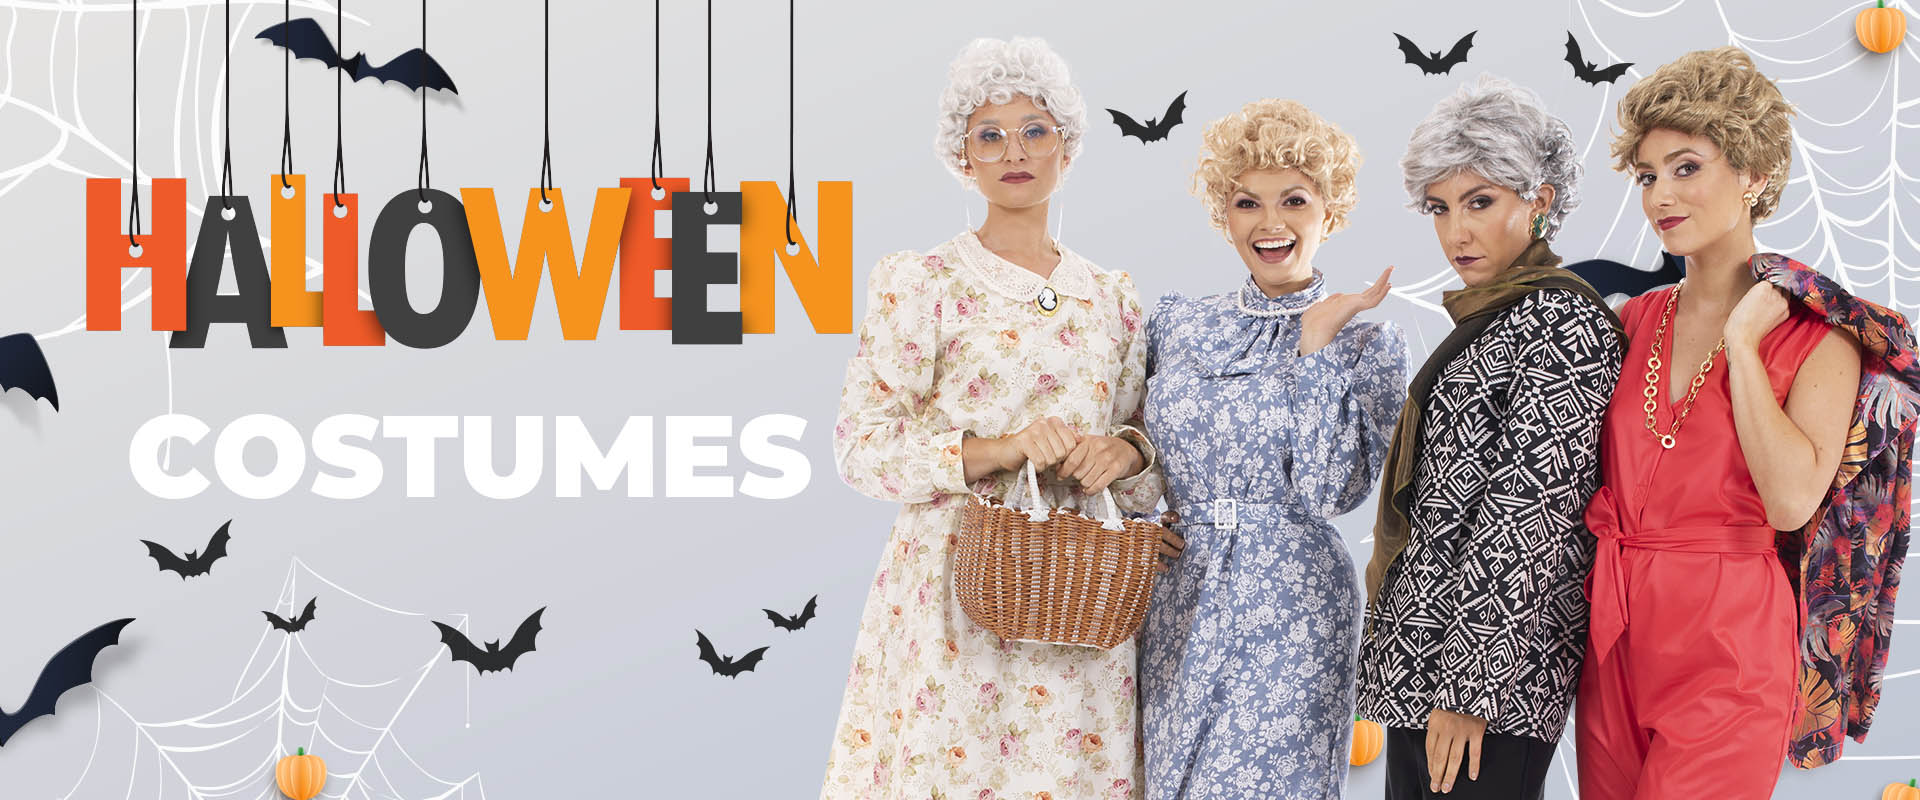 Shop Halloween costumes at Toynk